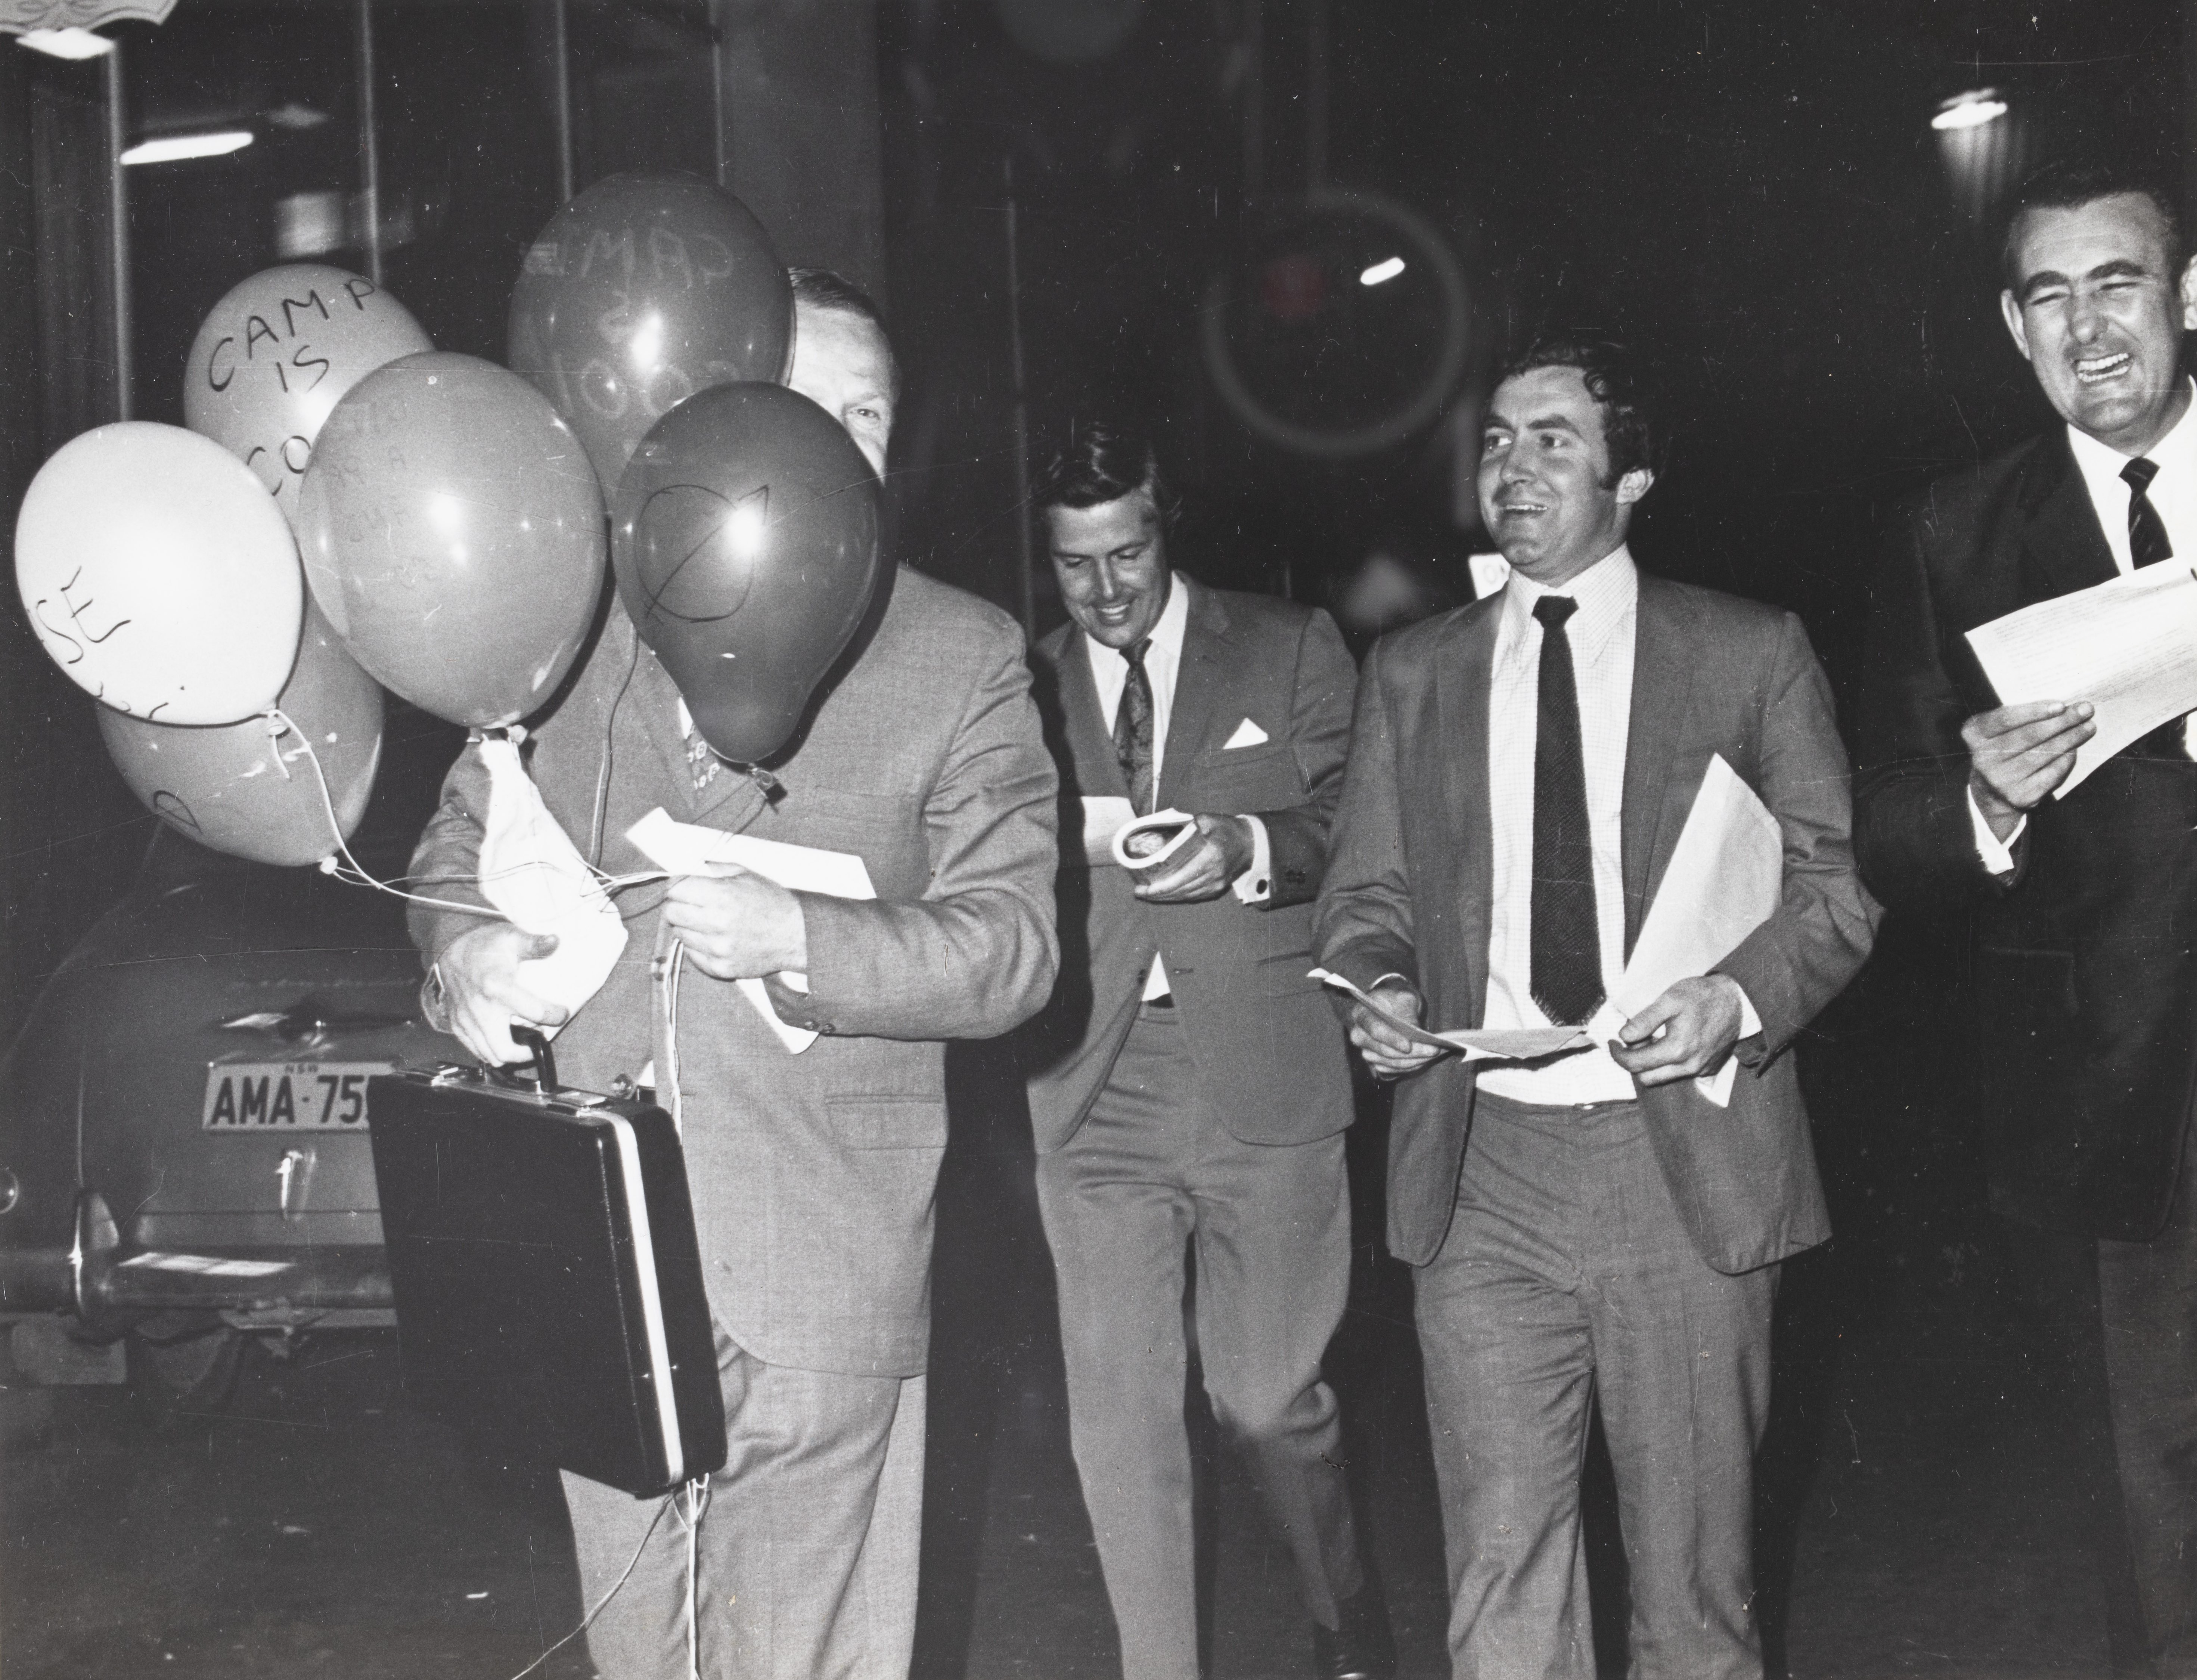 Politicians with balloons at CAMP Inc. demonstration outside NSW Liberal Party Headquarters, Ash St, Sydney.